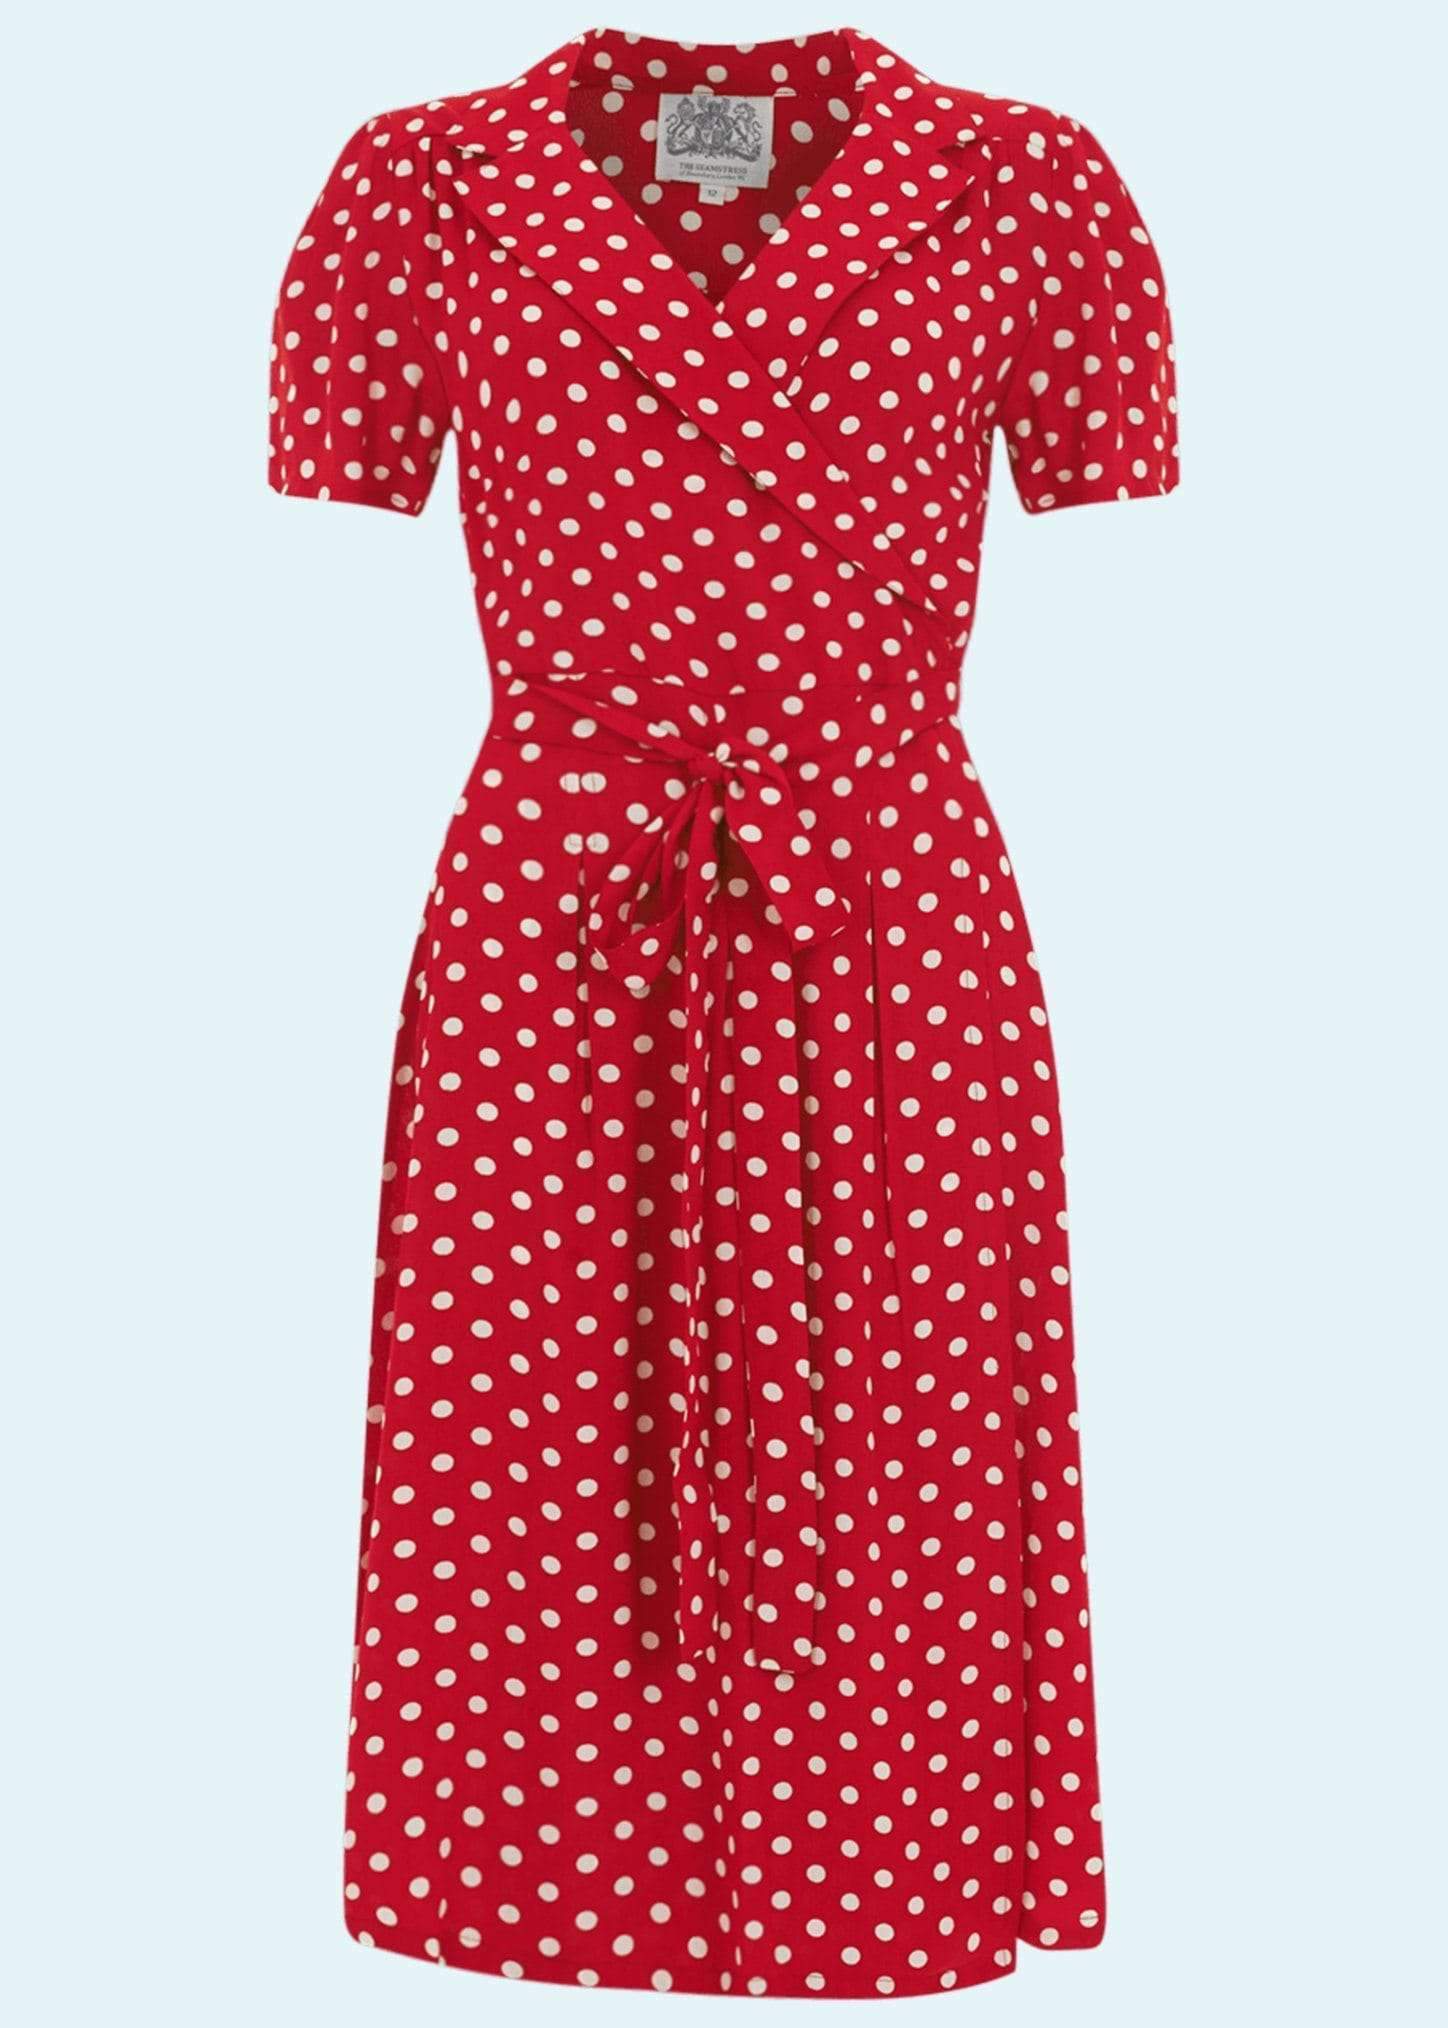 Wrap dress from The Seamstress of Bloomsbury with dots